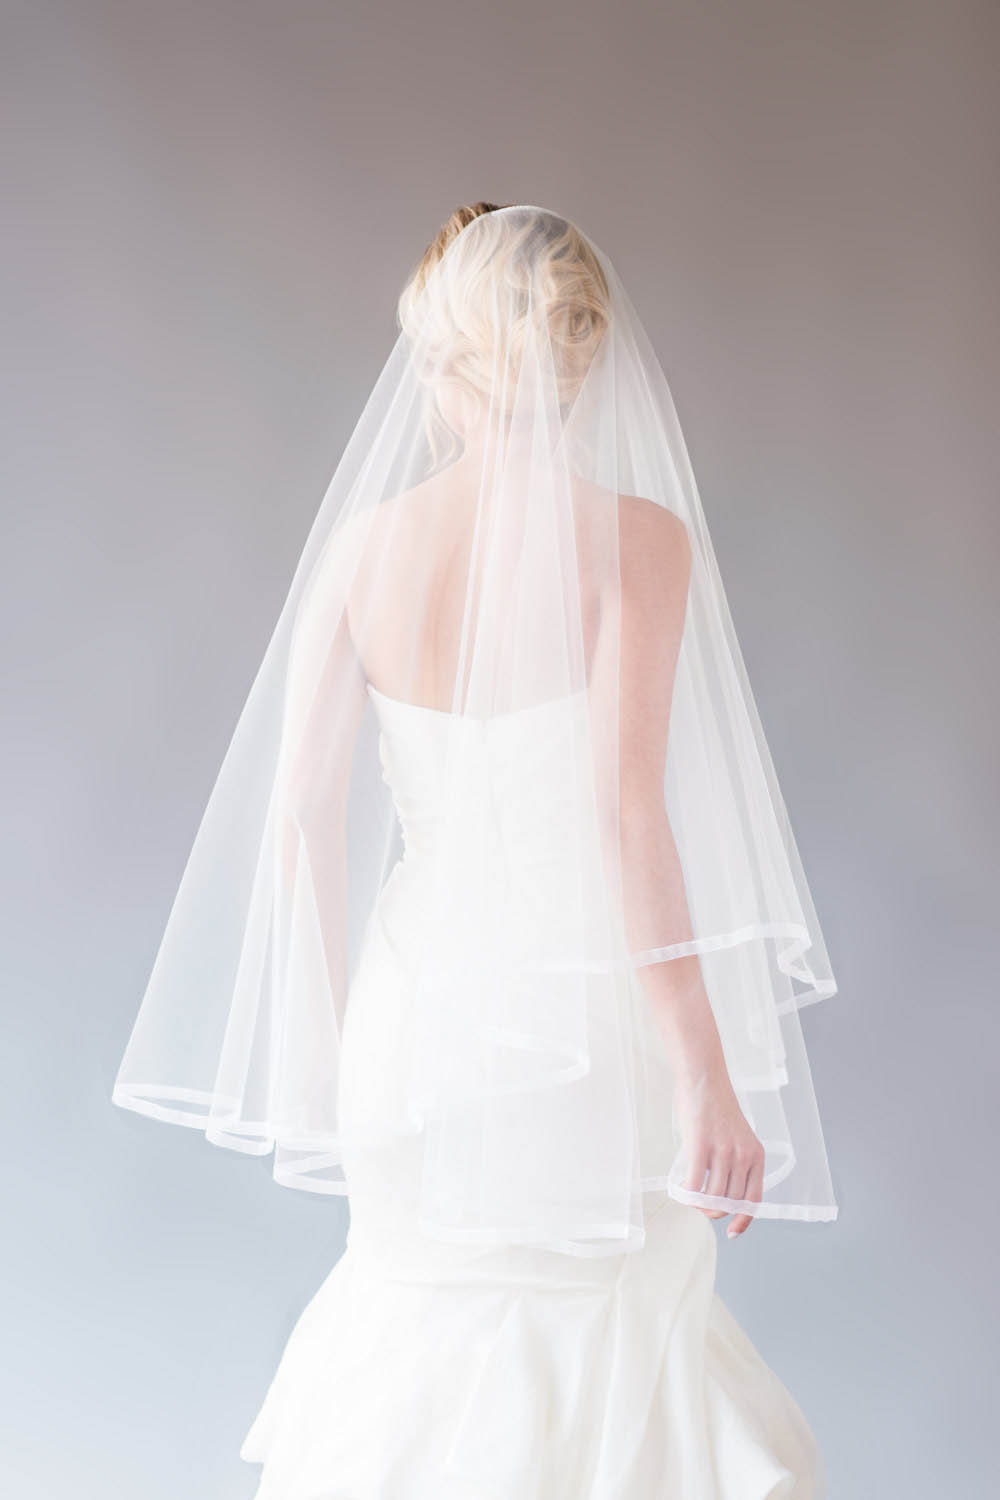 One Tier Fingertip Length Vintage Ivory Tulle Bridal Veil